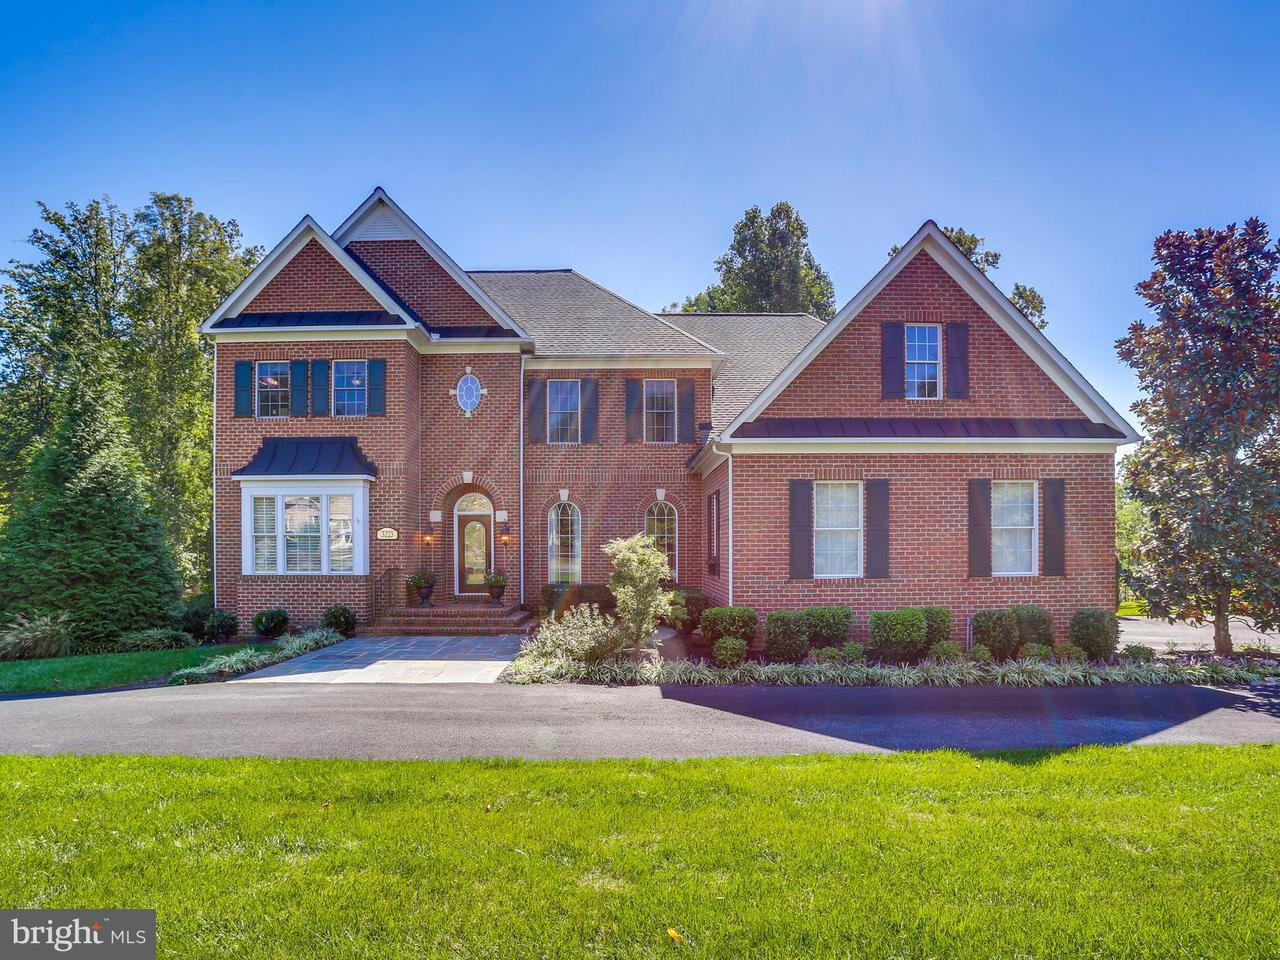 Single Family Home for Sale at 3223 Huntersworth 3223 Huntersworth Glenwood, Maryland 21738 United States